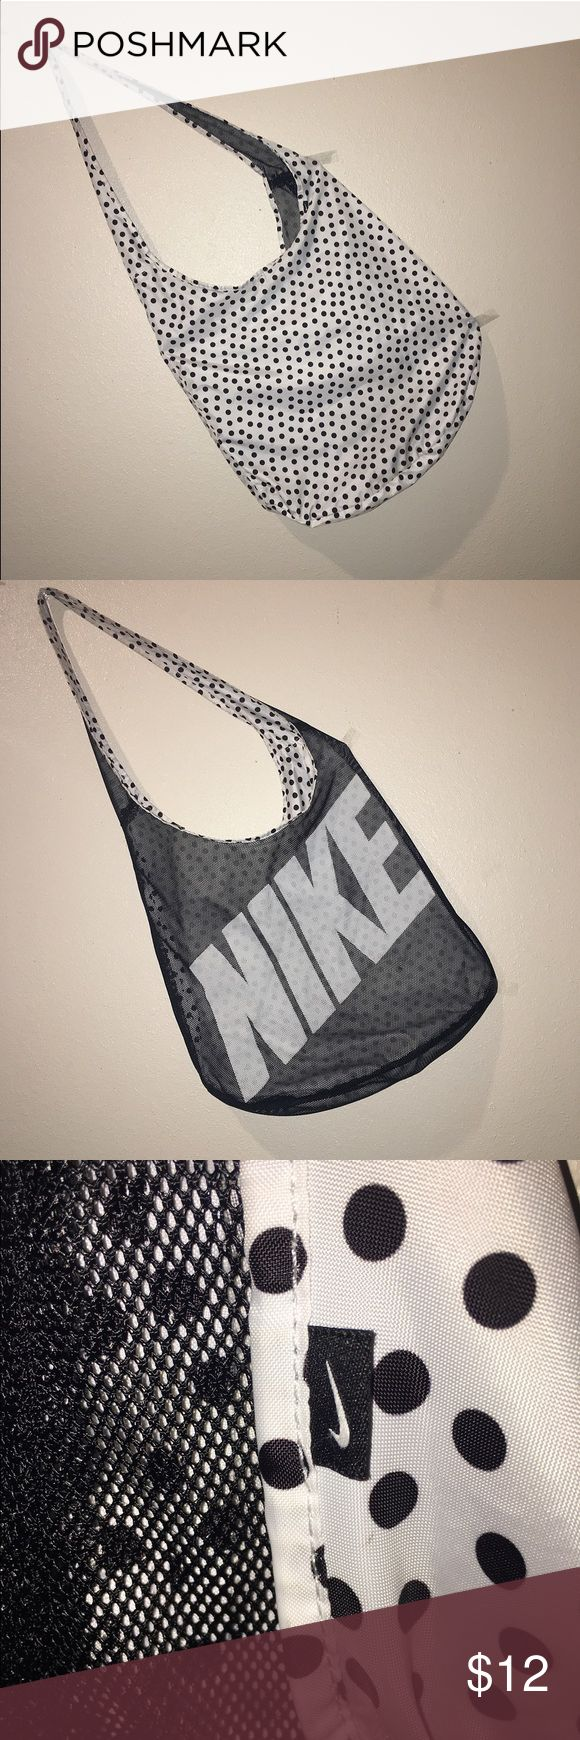 Nike Polkadot and Mesh Reversible Tote This is nearly new reversible Nike tote is perfect from hitting the gym to using as a book bag. It's black and white coloring make it the perfect accessory for any colored top. Make this the most versatile item in your new closet! Nike Bags Totes